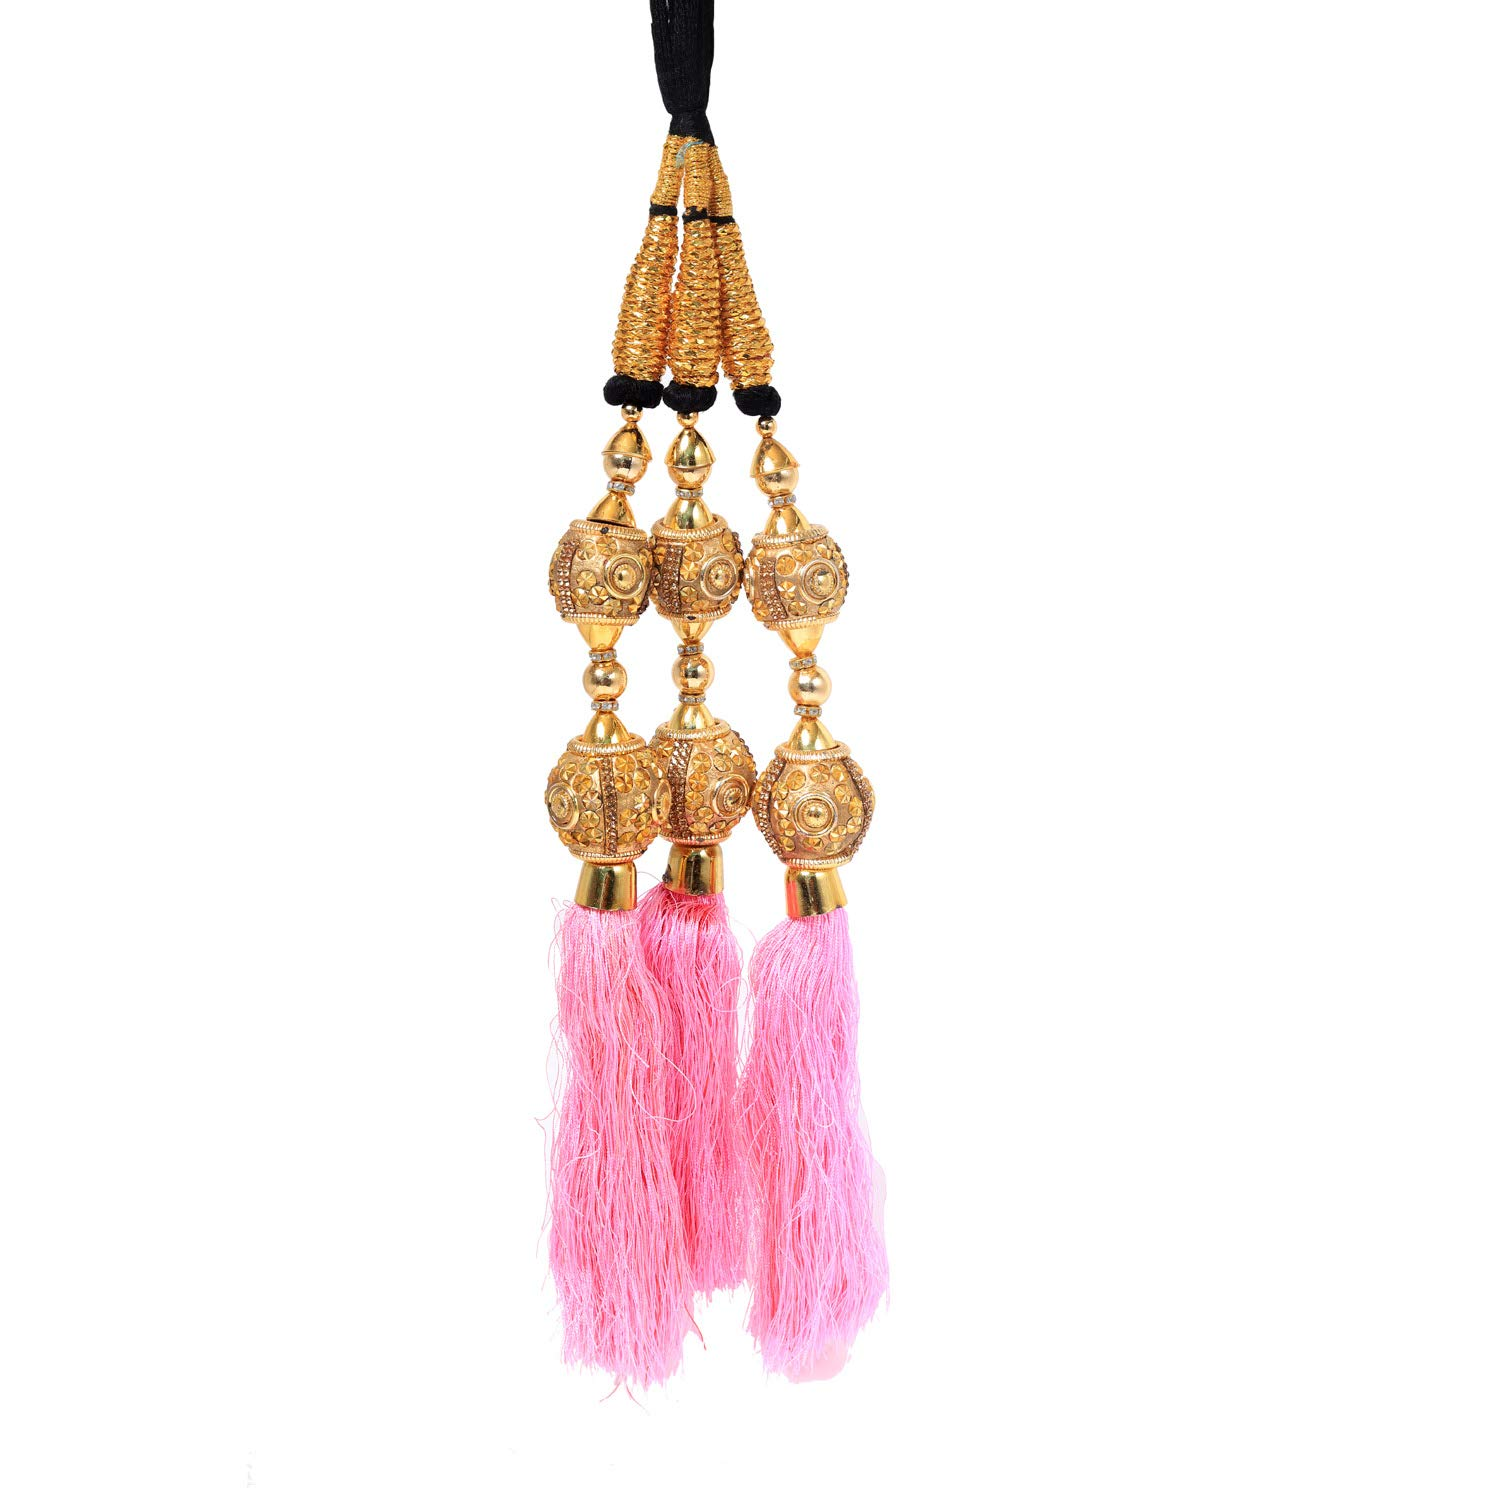 SANARA Indian Bollywood Girl's Long Extensions for Hair Nippon regular agency Tassels Year-end annual account